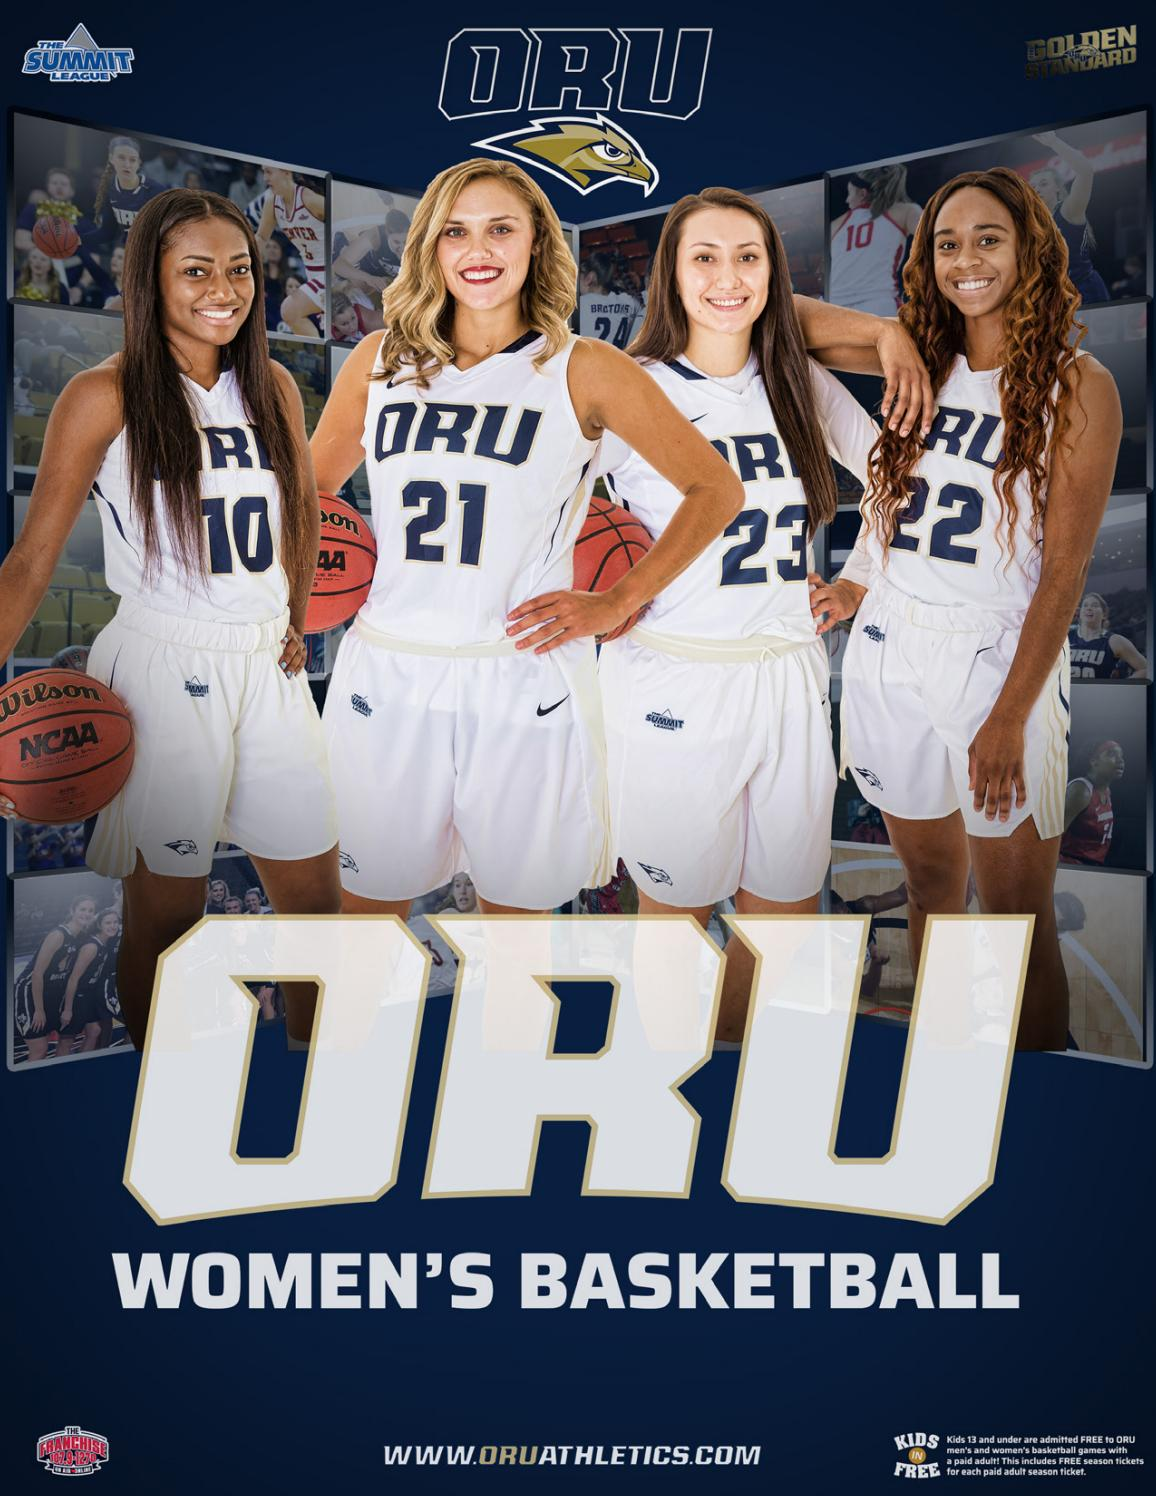 a59b3ecbf051 ORU Women s Basketball 2018-19 Media Guide by ORU Athletics - issuu